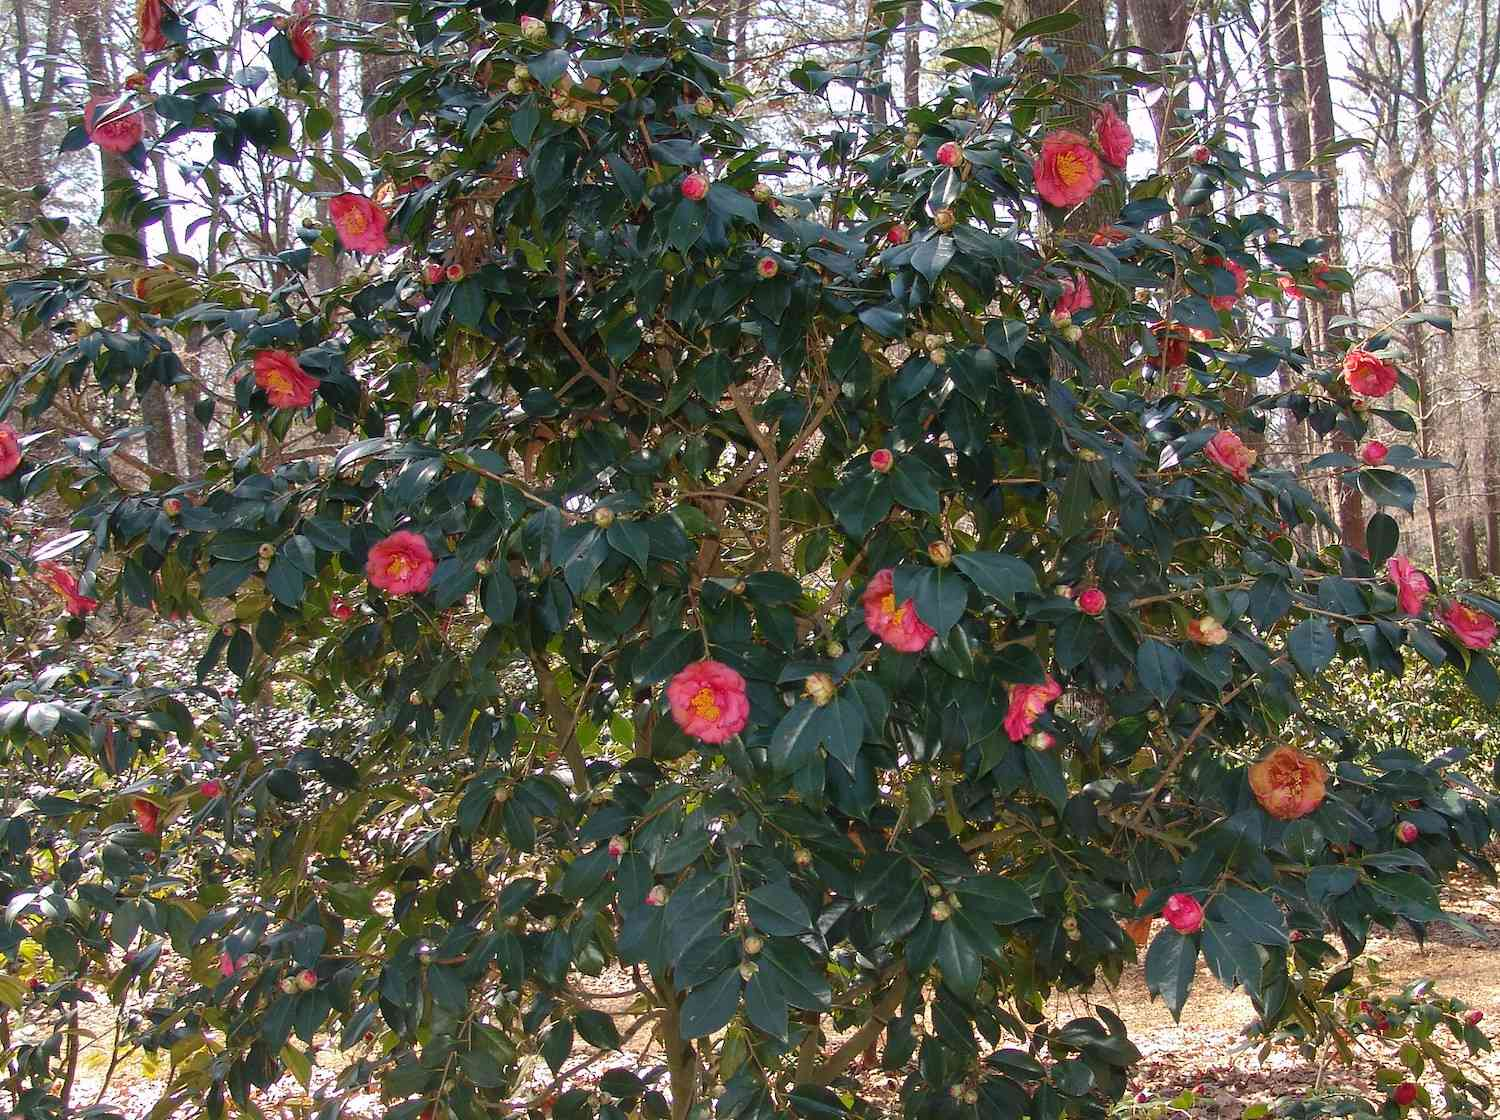 A rounded green bush with a couple dozen pink Japanese camellia flowers in full bloom